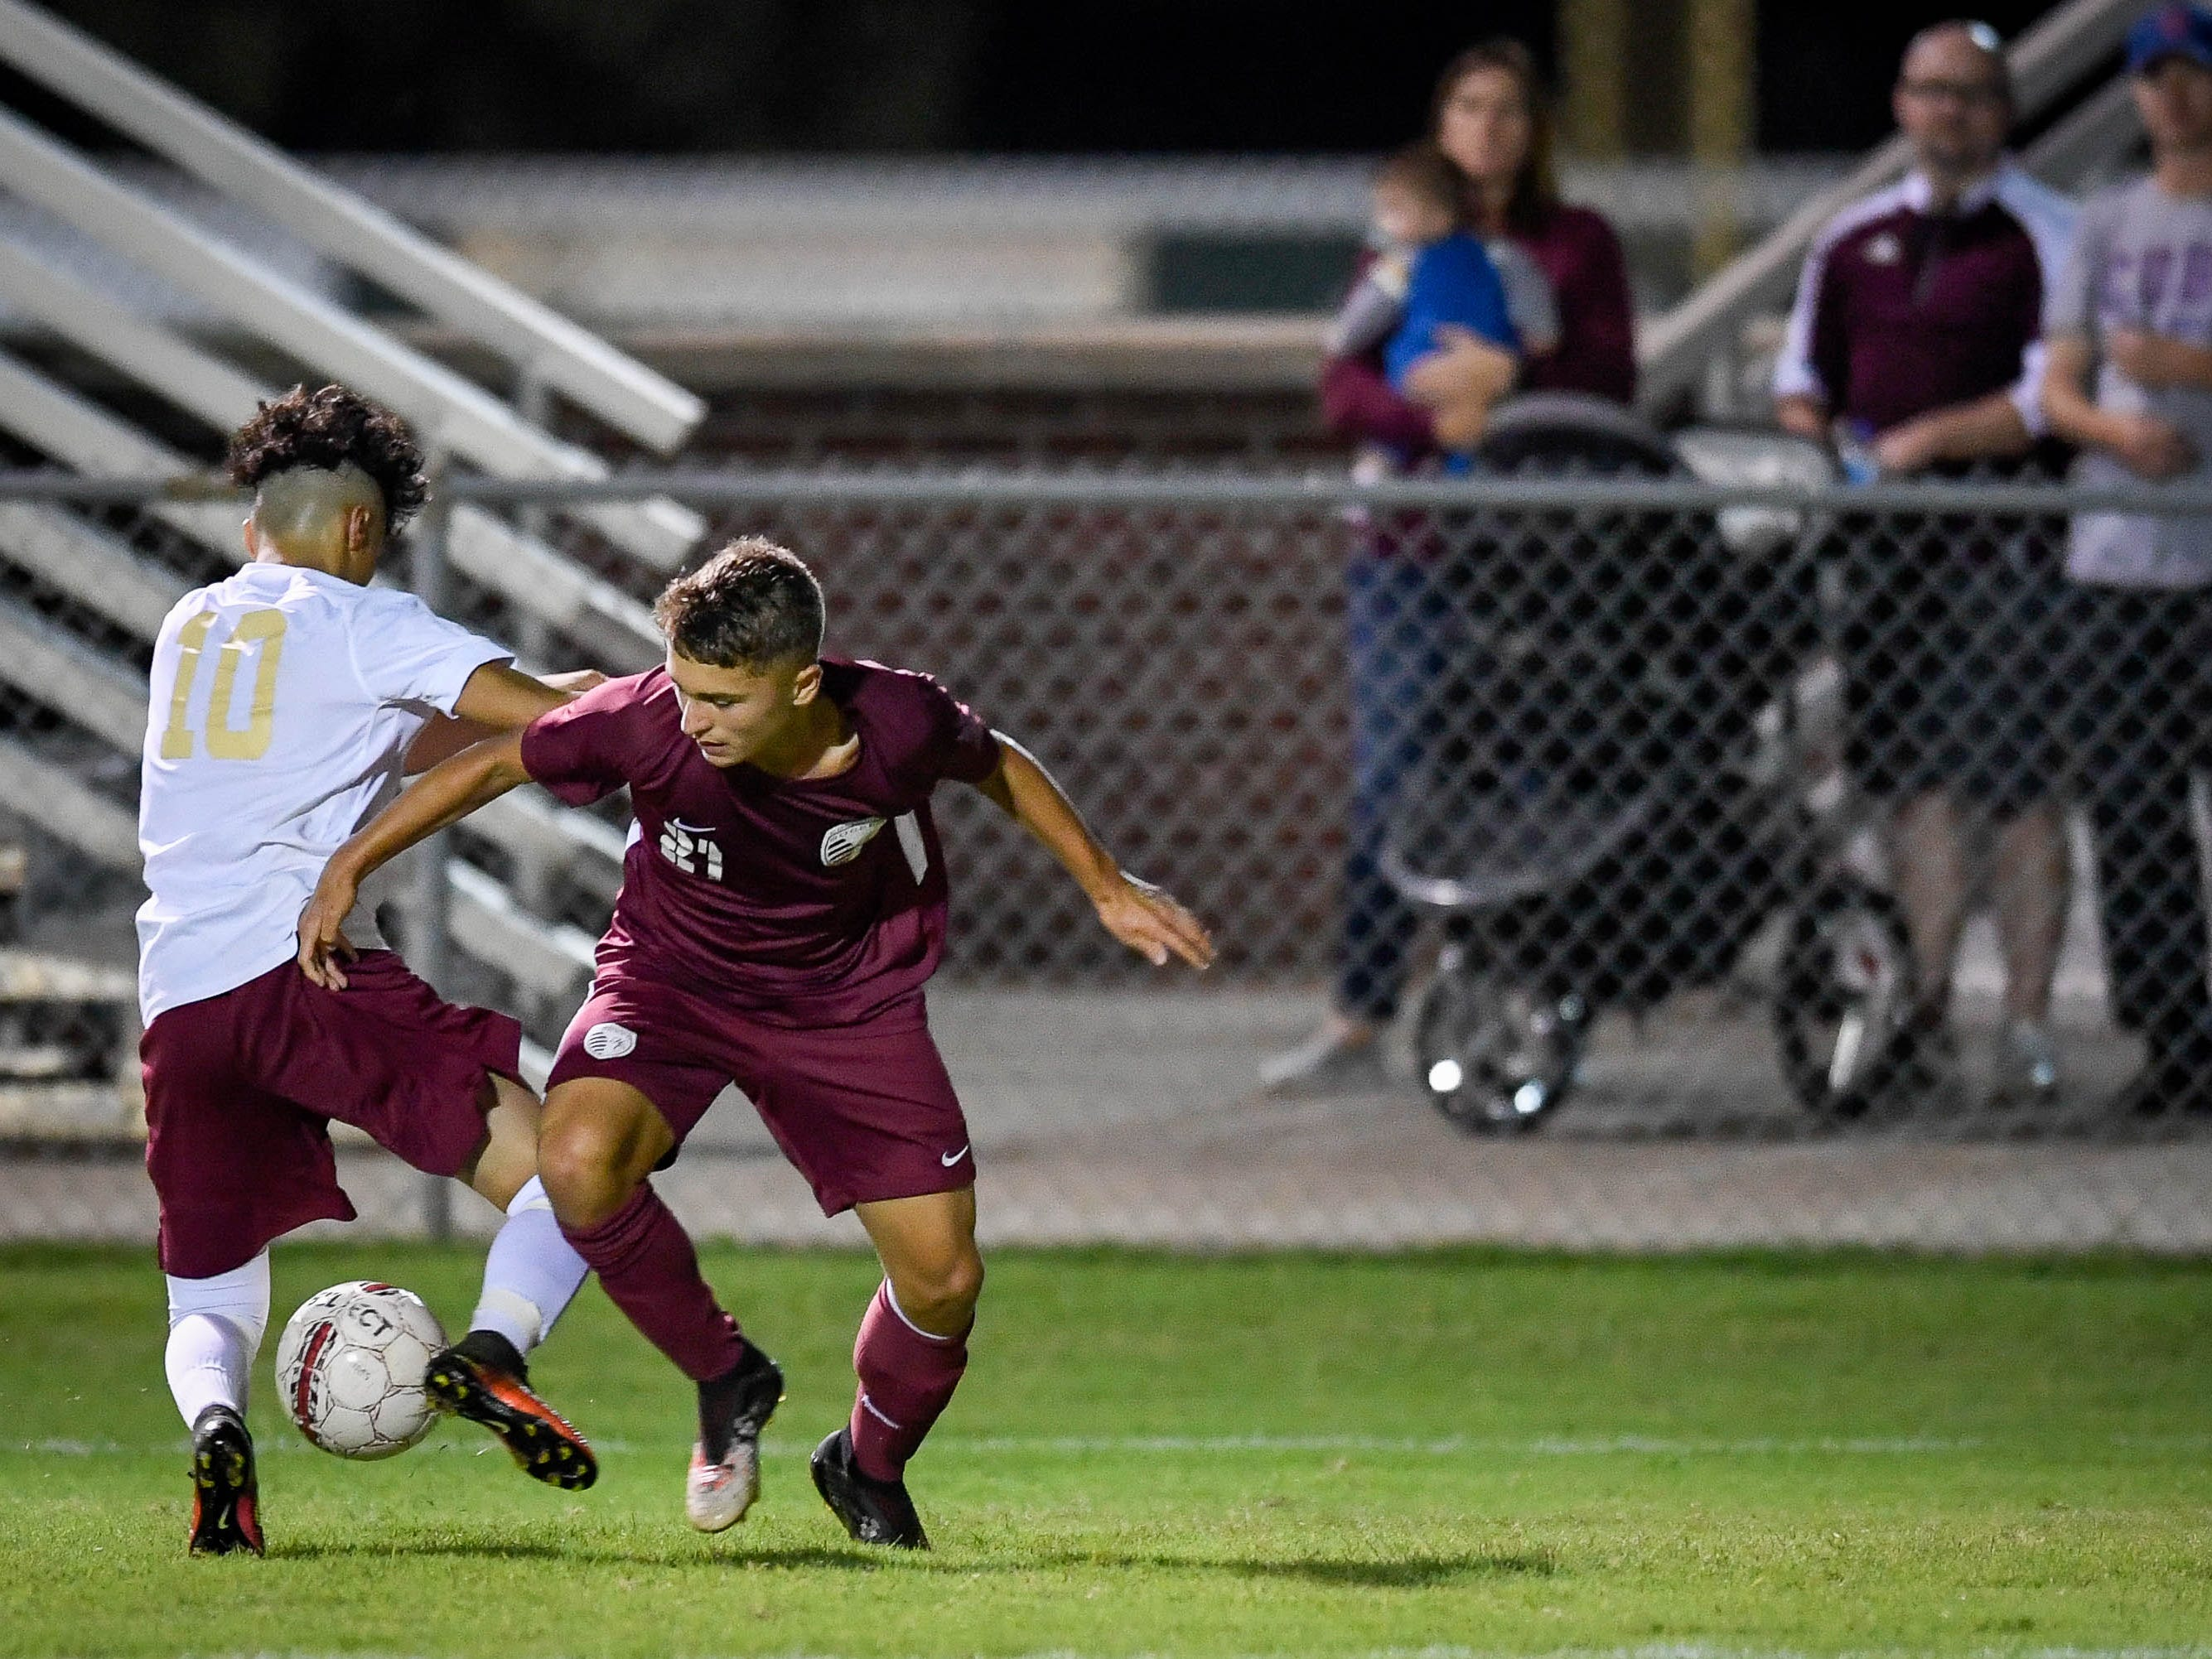 Webster's Santos Portillo (10) and Henderson County's Ashton Todd (21) battle as the Henderson County Colonels play the Webster County Trojans in the Sixth District Soccer Tournament at Colonel Field Wednesday, October 10, 2018.